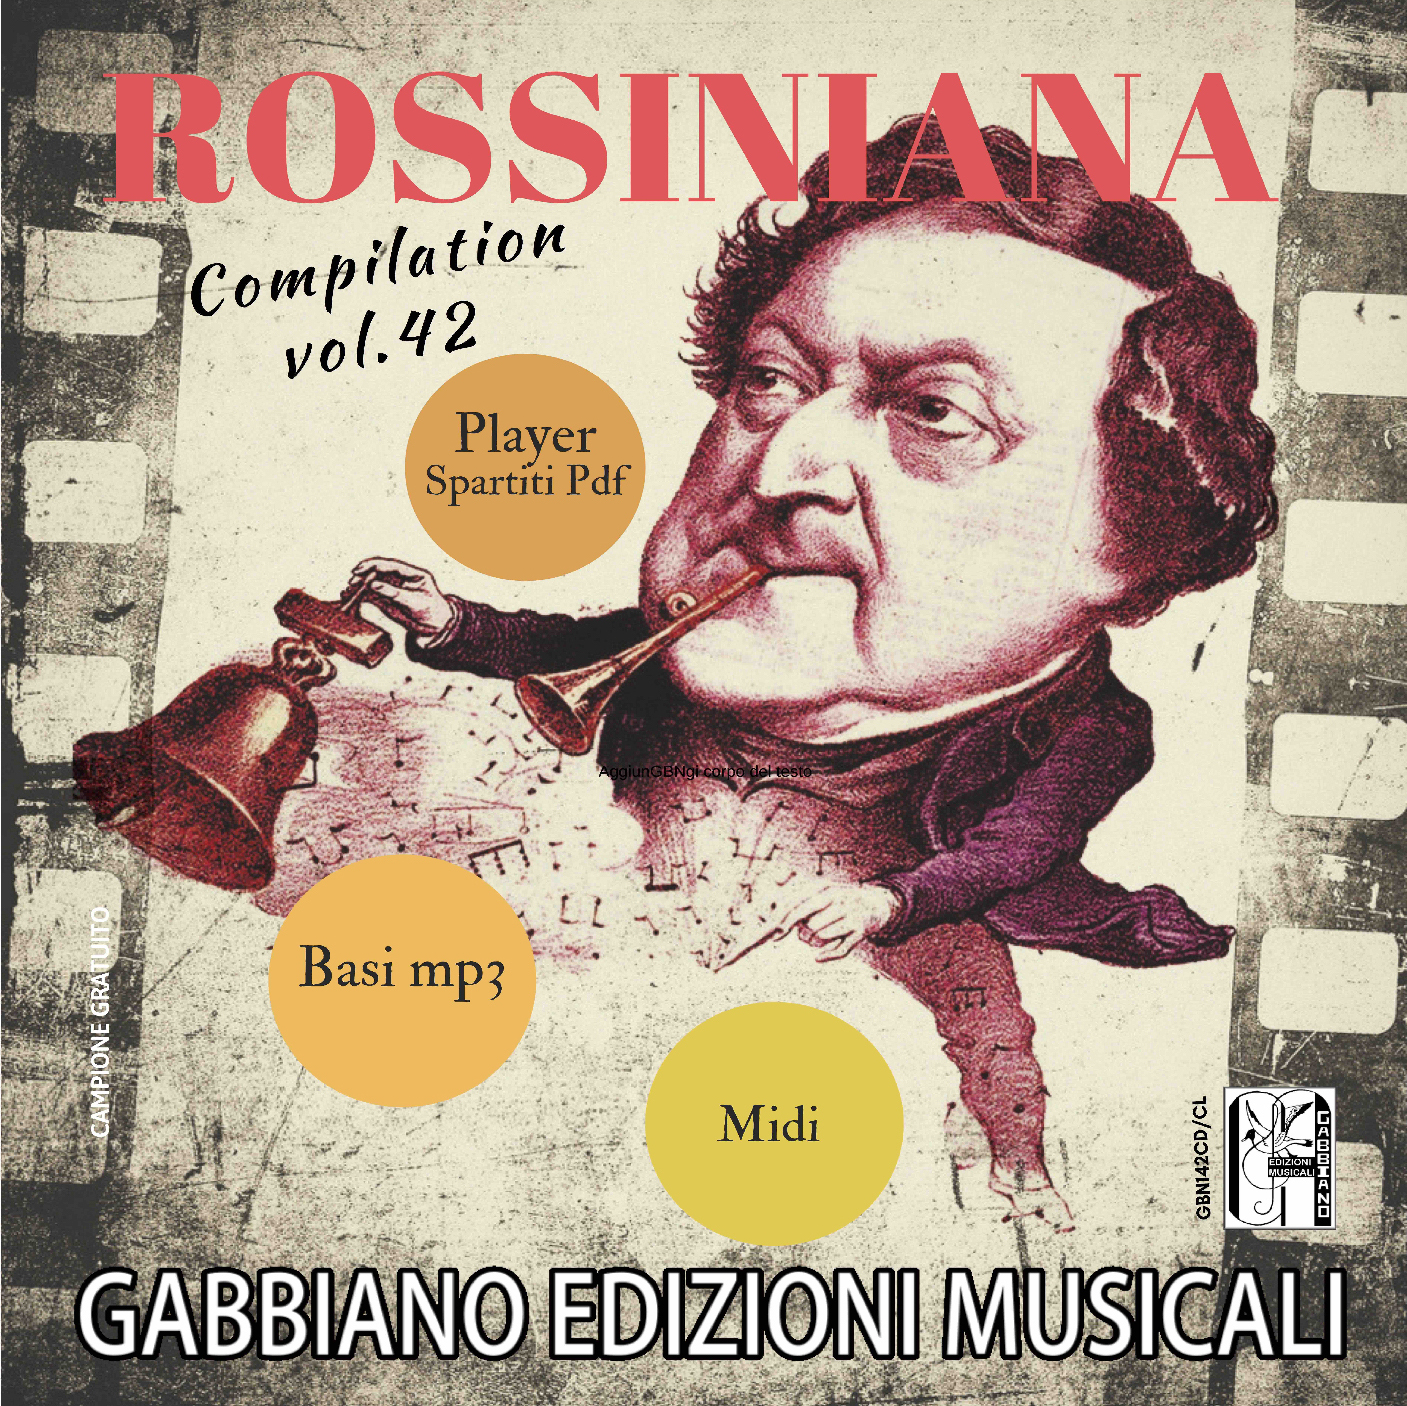 GBN142CD/CL - Rossiniana - Volume 42